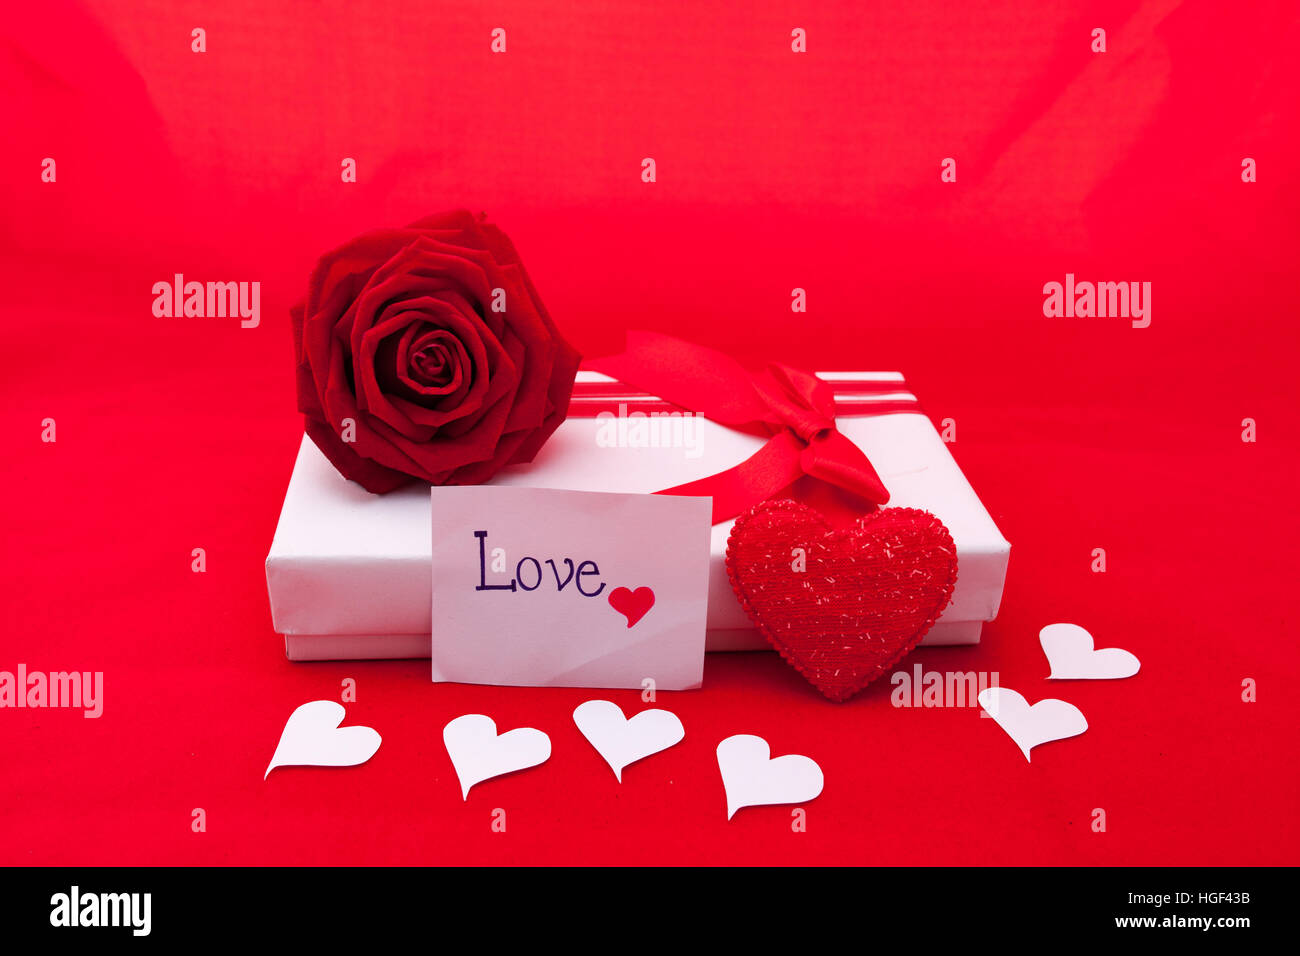 Valentines gift box with a red bow on red background. Image of Valentines day. Stock Photo